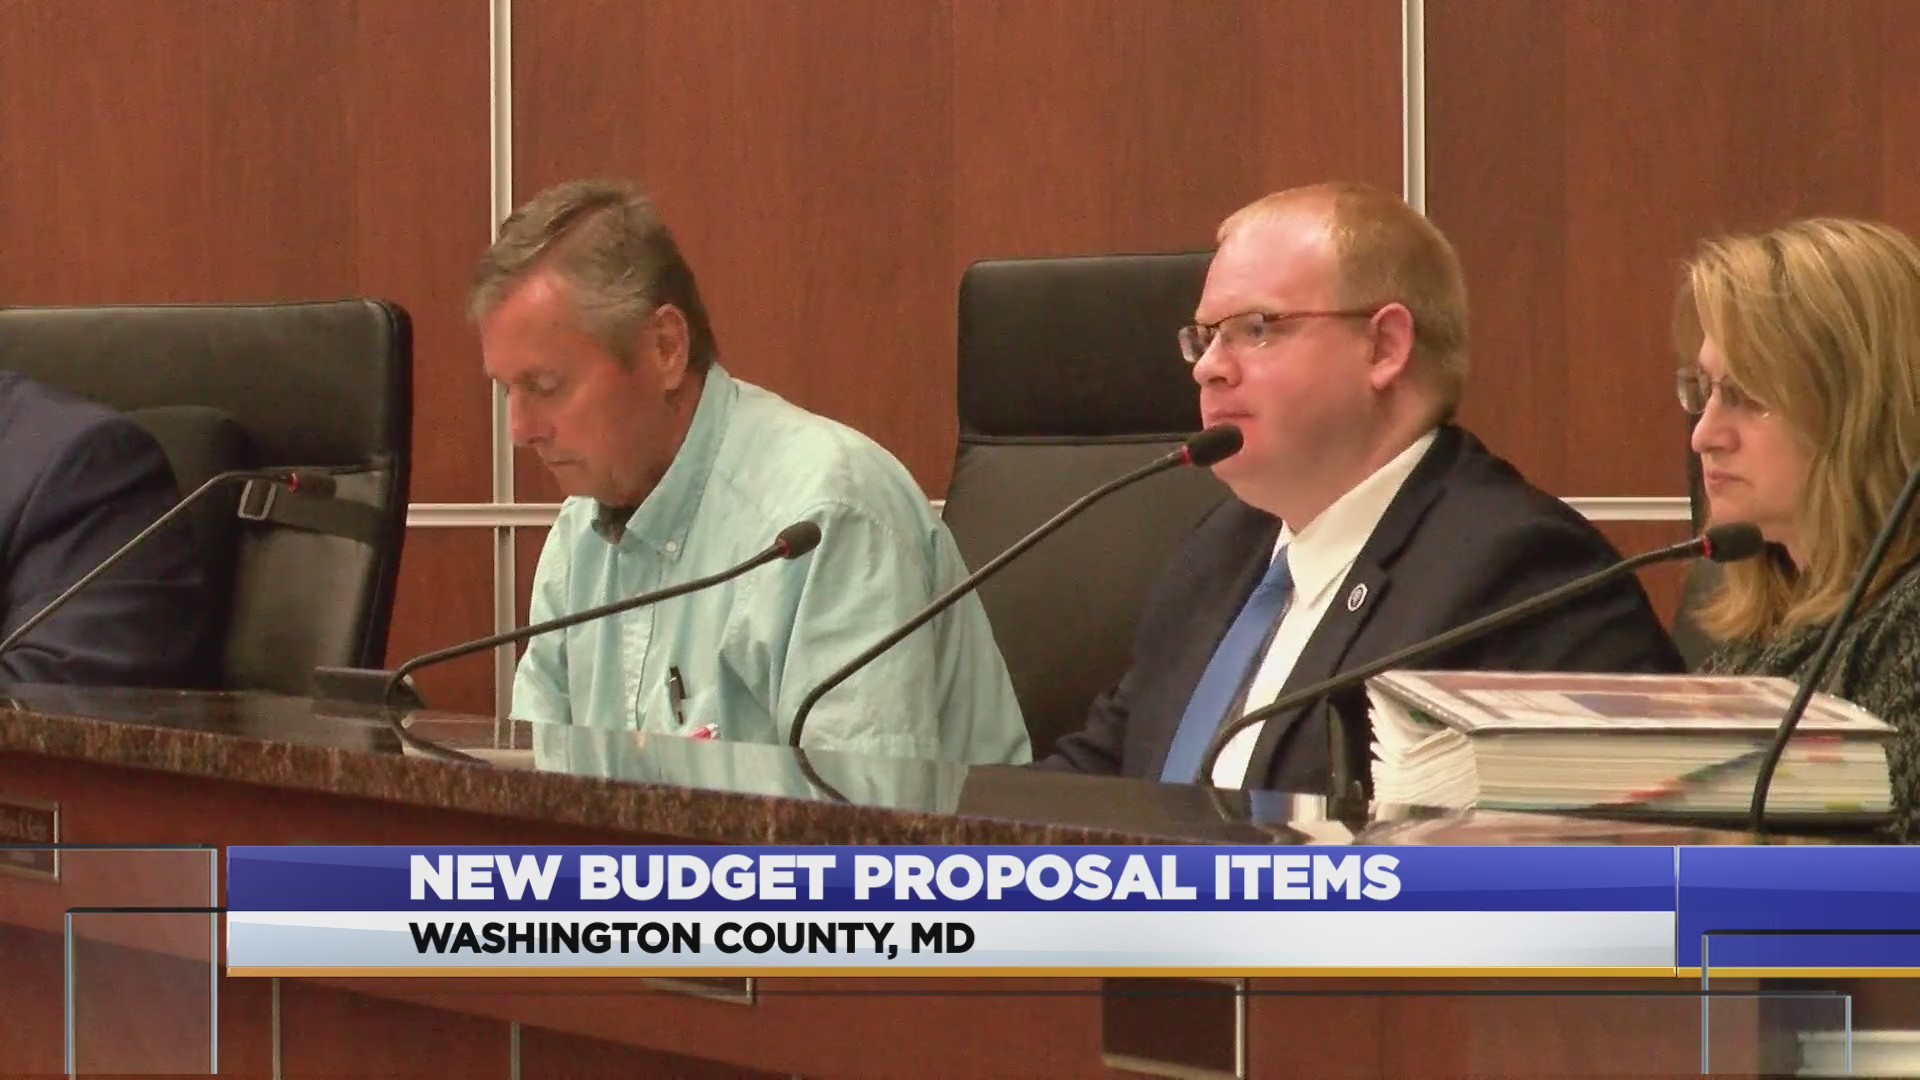 New_budget_proposal_items_Washington_Cou_0_20190529212106